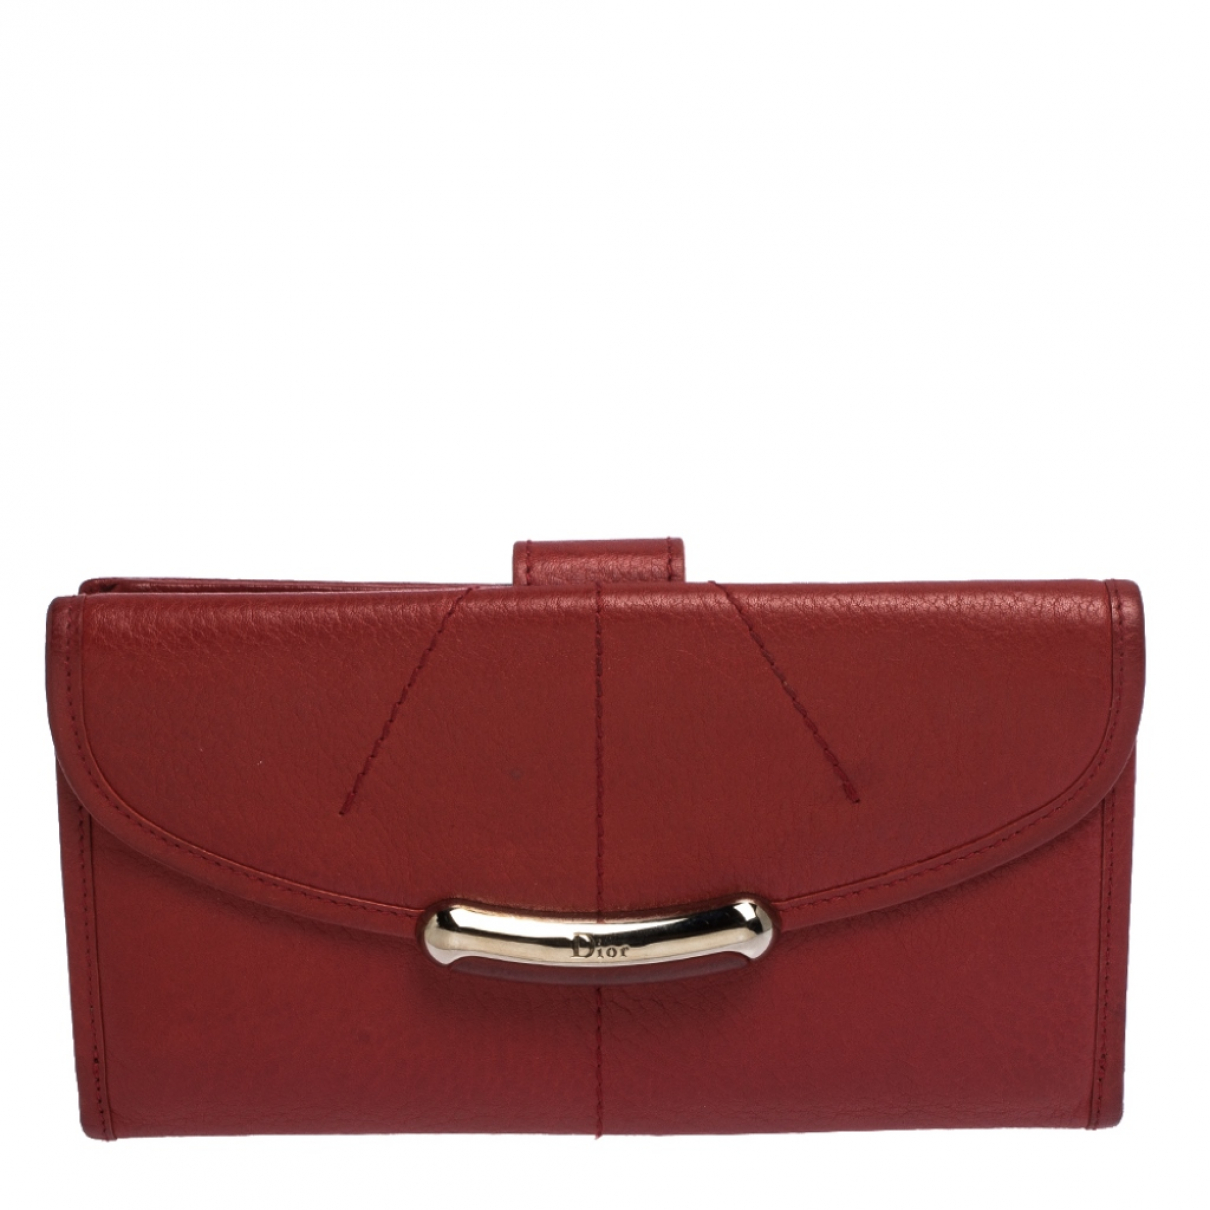 Dior N Red Leather wallet for Women N